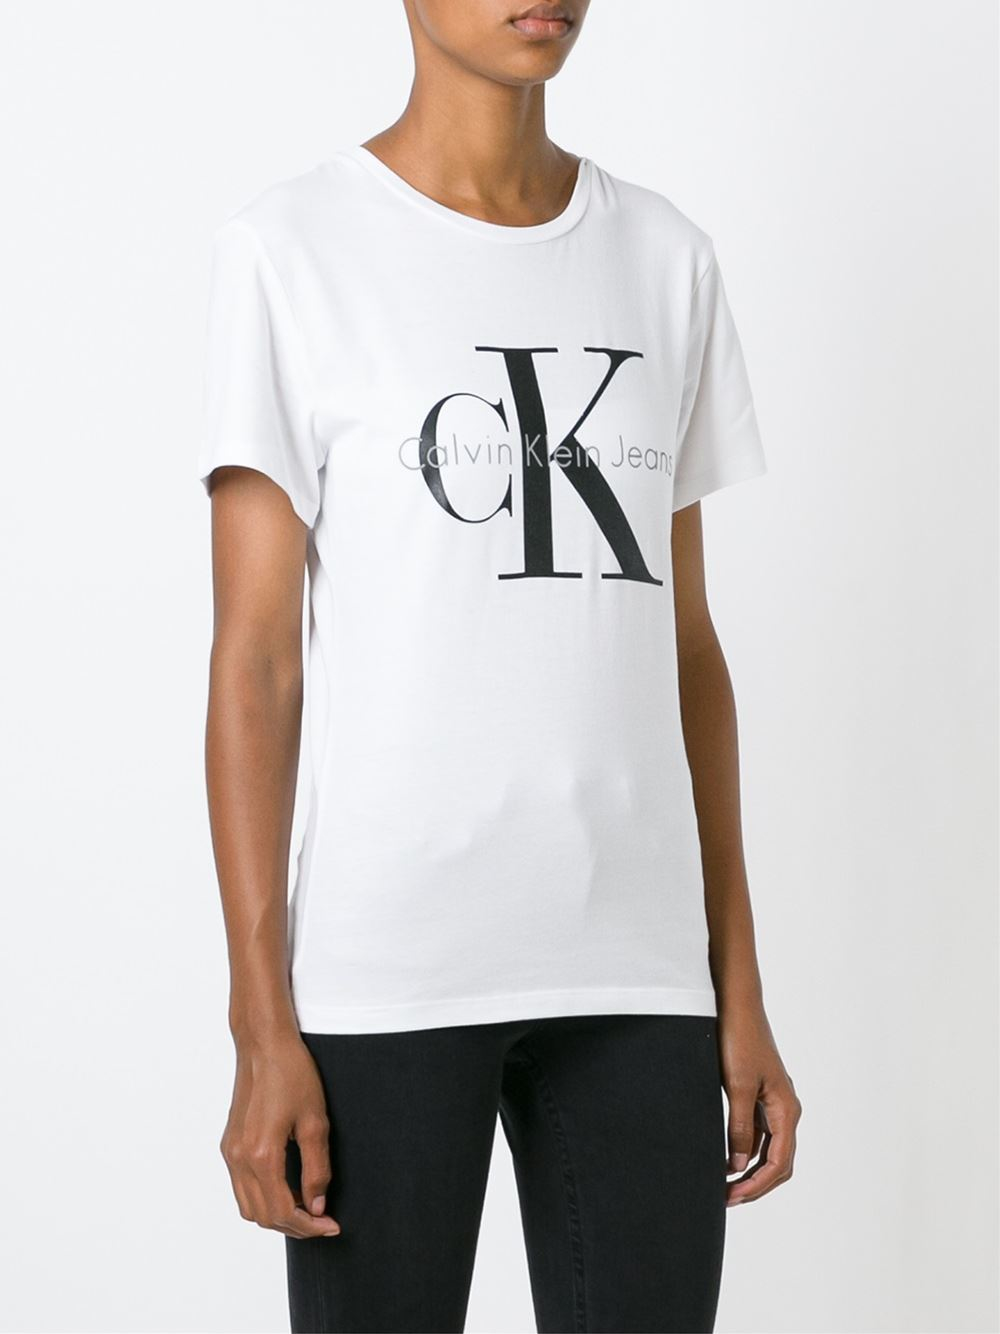 pin tee shirt calvin klein pour femme cwp49 blanc on pinterest. Black Bedroom Furniture Sets. Home Design Ideas